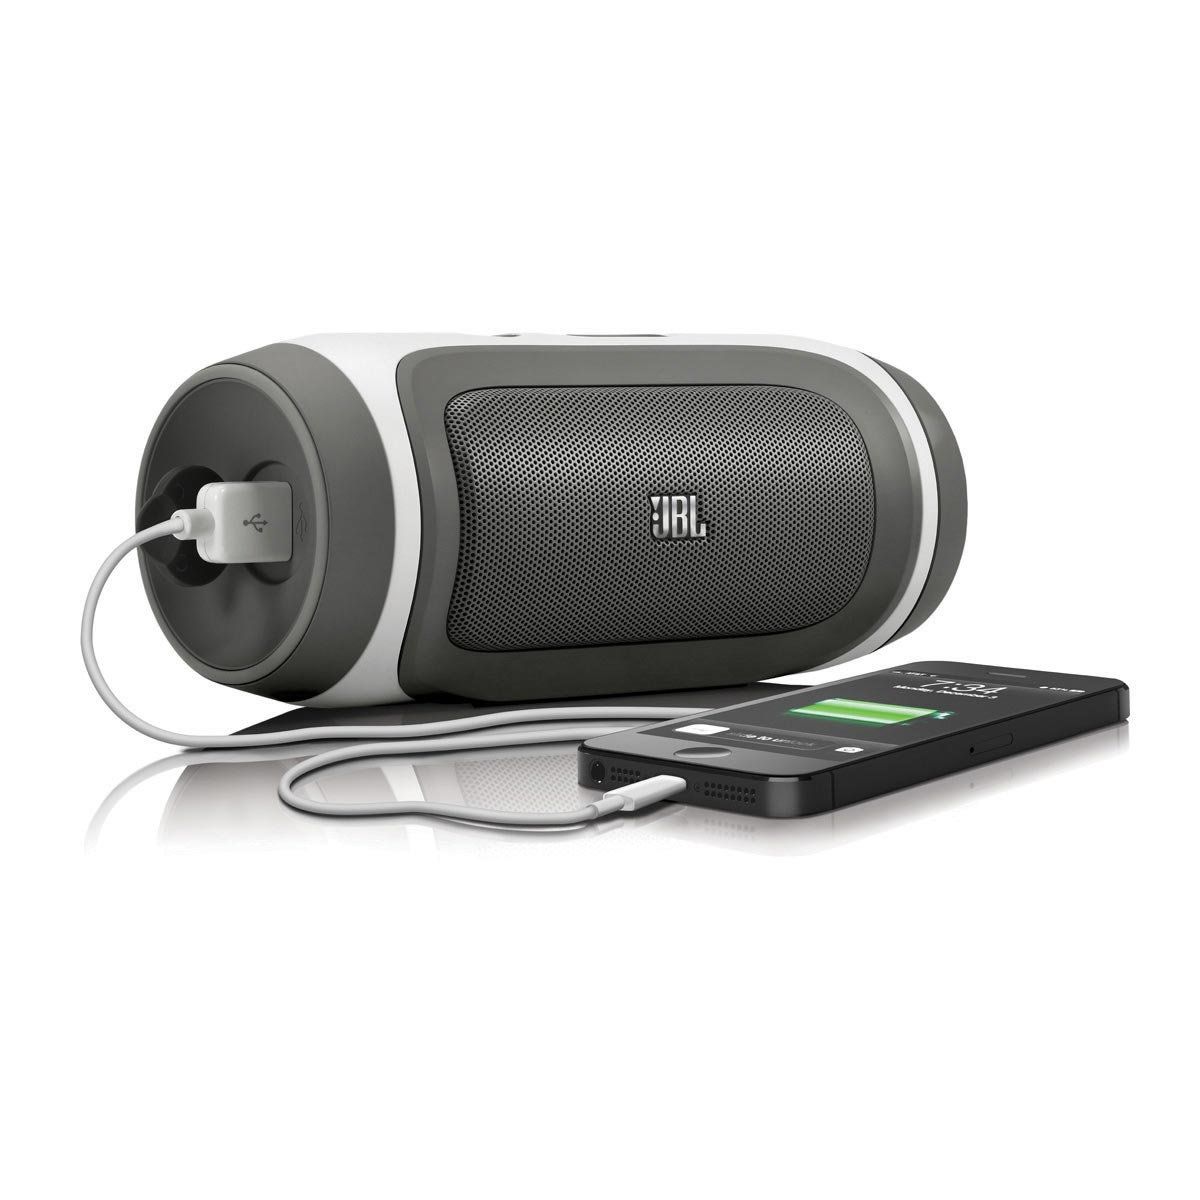 L'enceinte Bluetooth JBL Charge en mode recharge via la prise USB